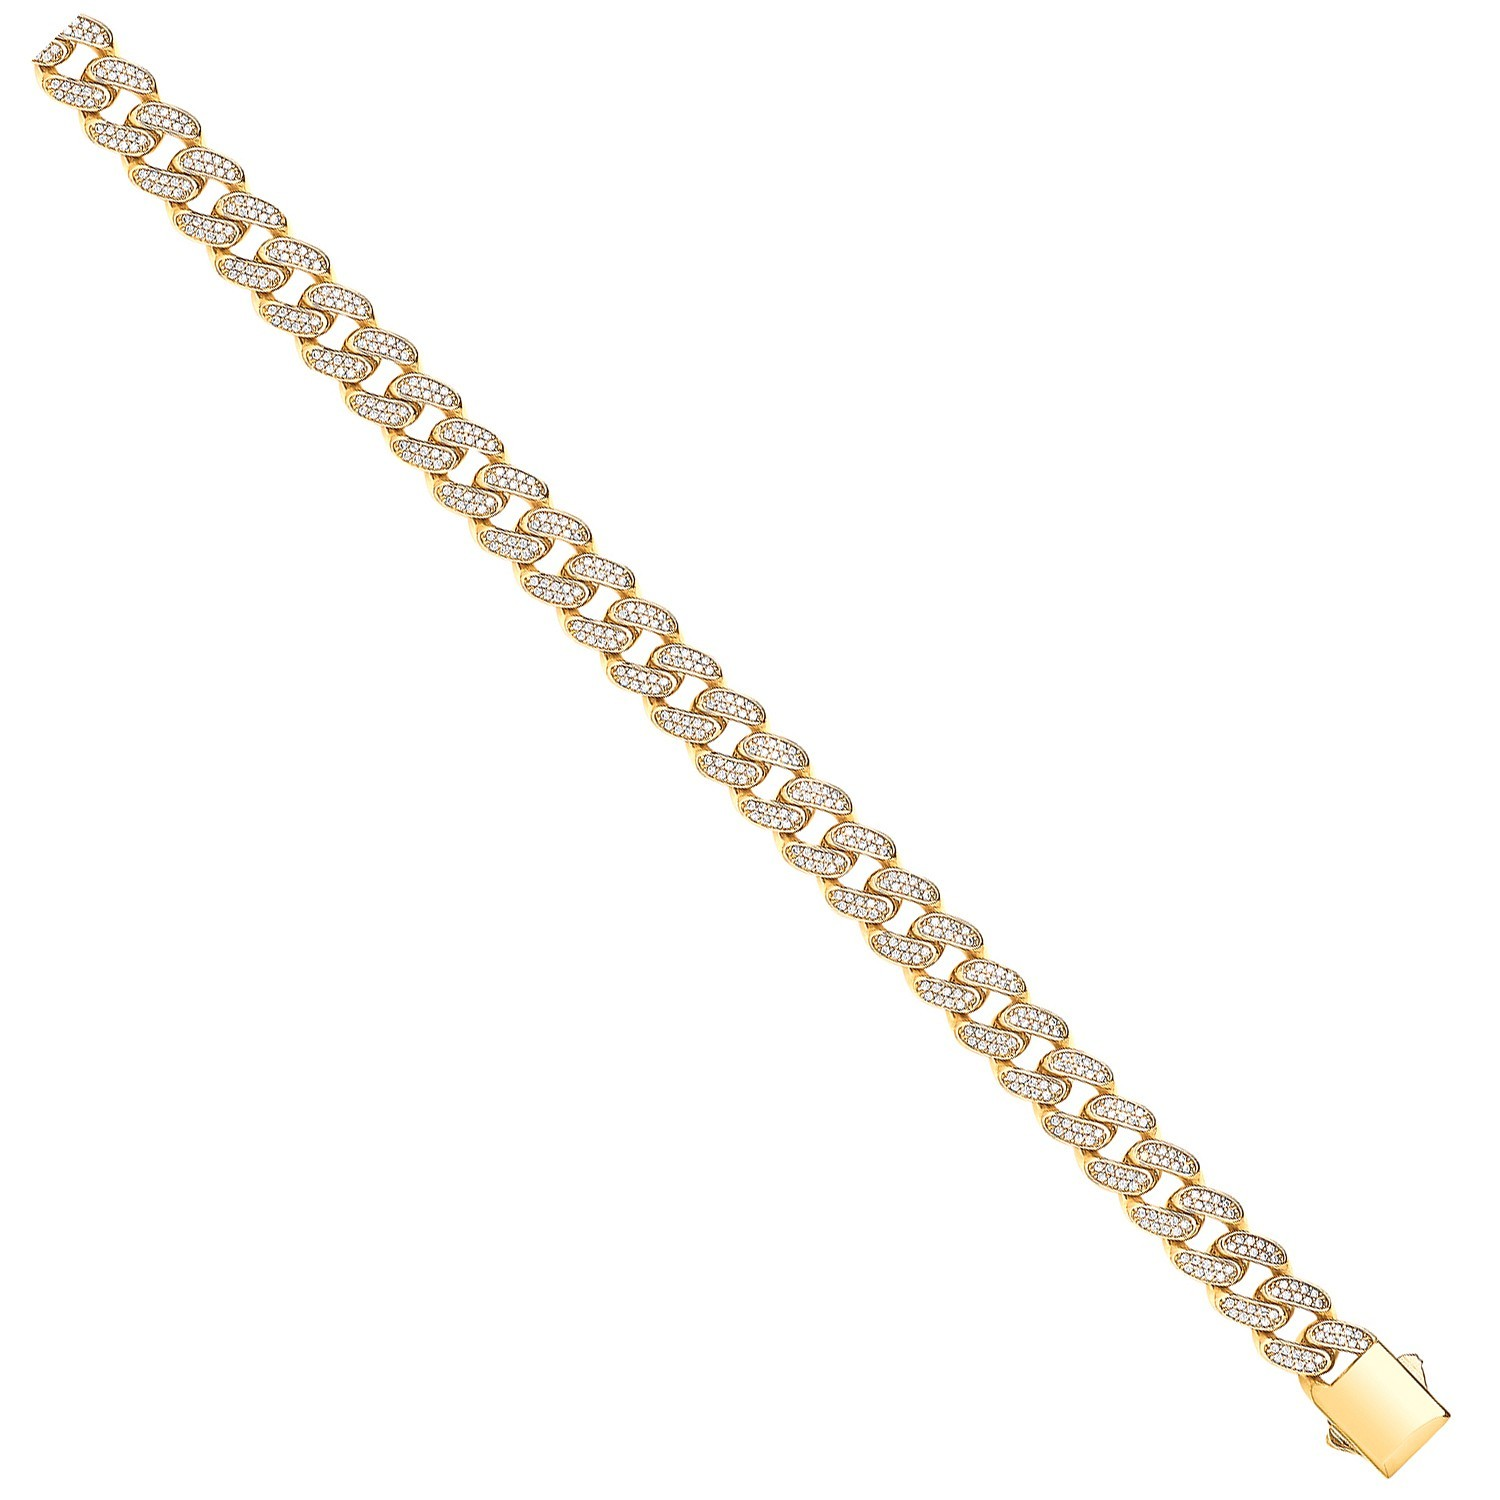 Y/G Cuban Curb 10.0mm Link with CZs Bracelet/Chain